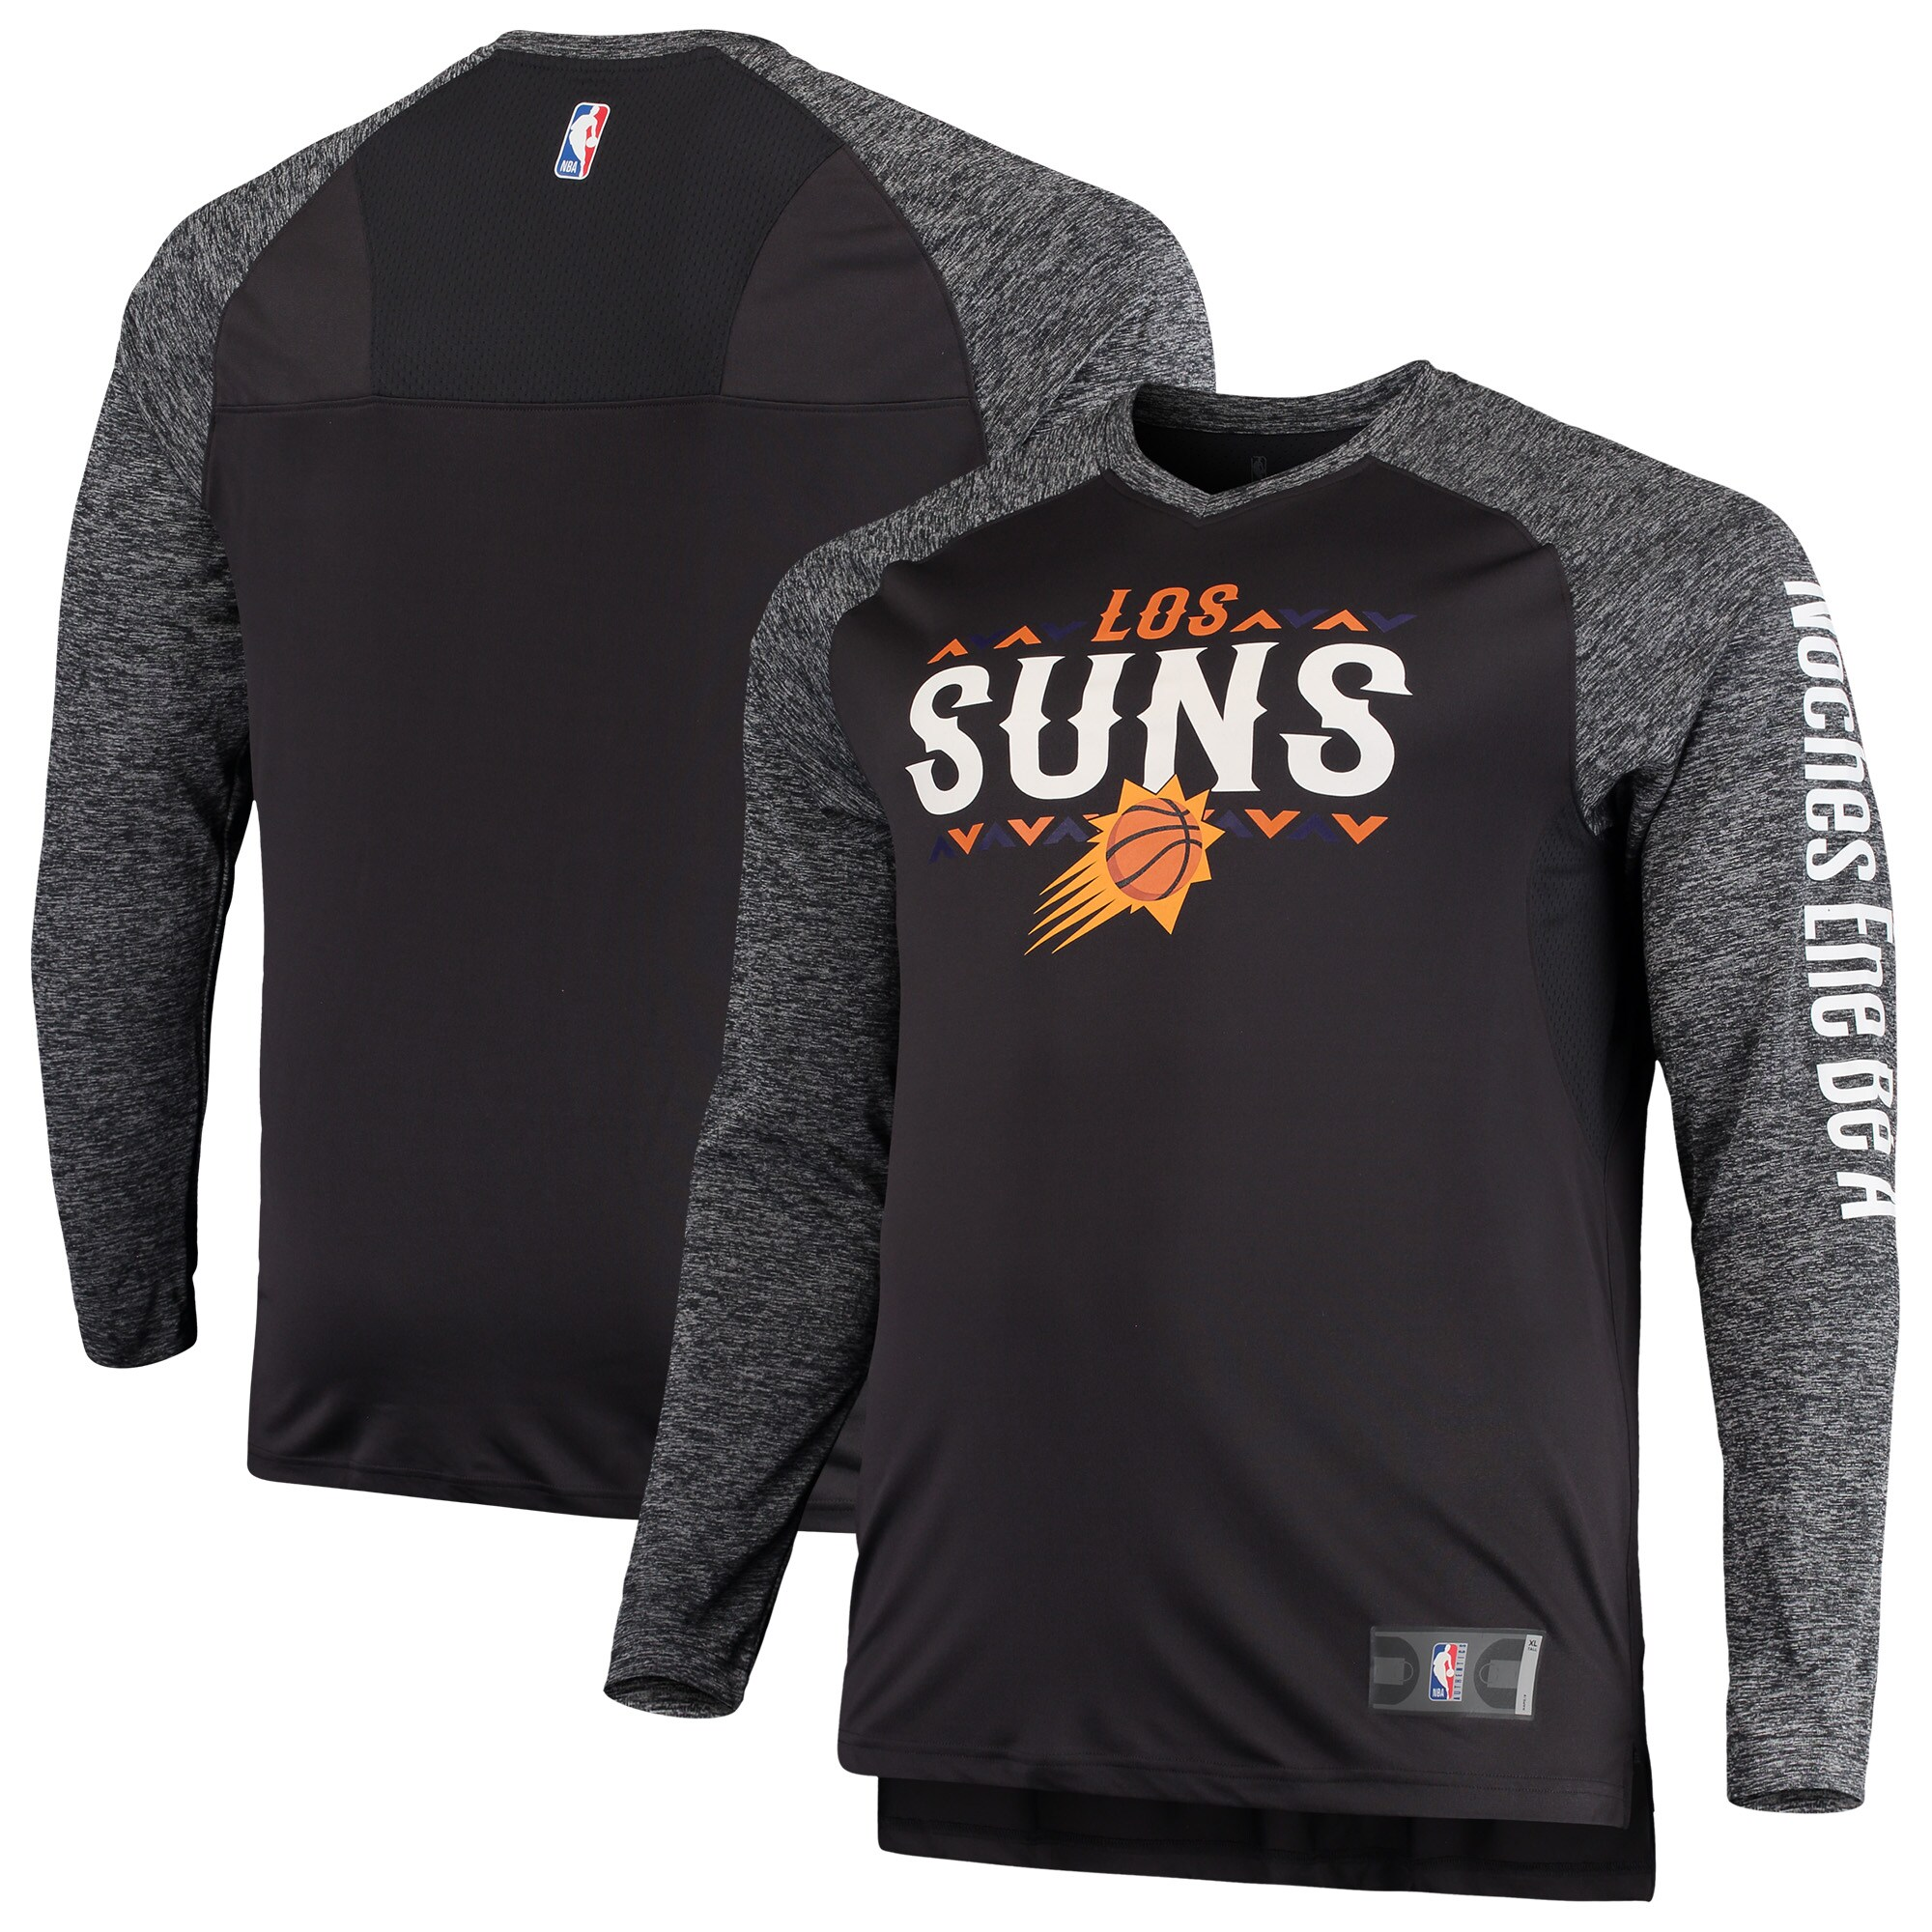 Phoenix Suns Fanatics Branded Noches Shooting Long Sleeve Raglan V-Neck T-Shirt - Gray